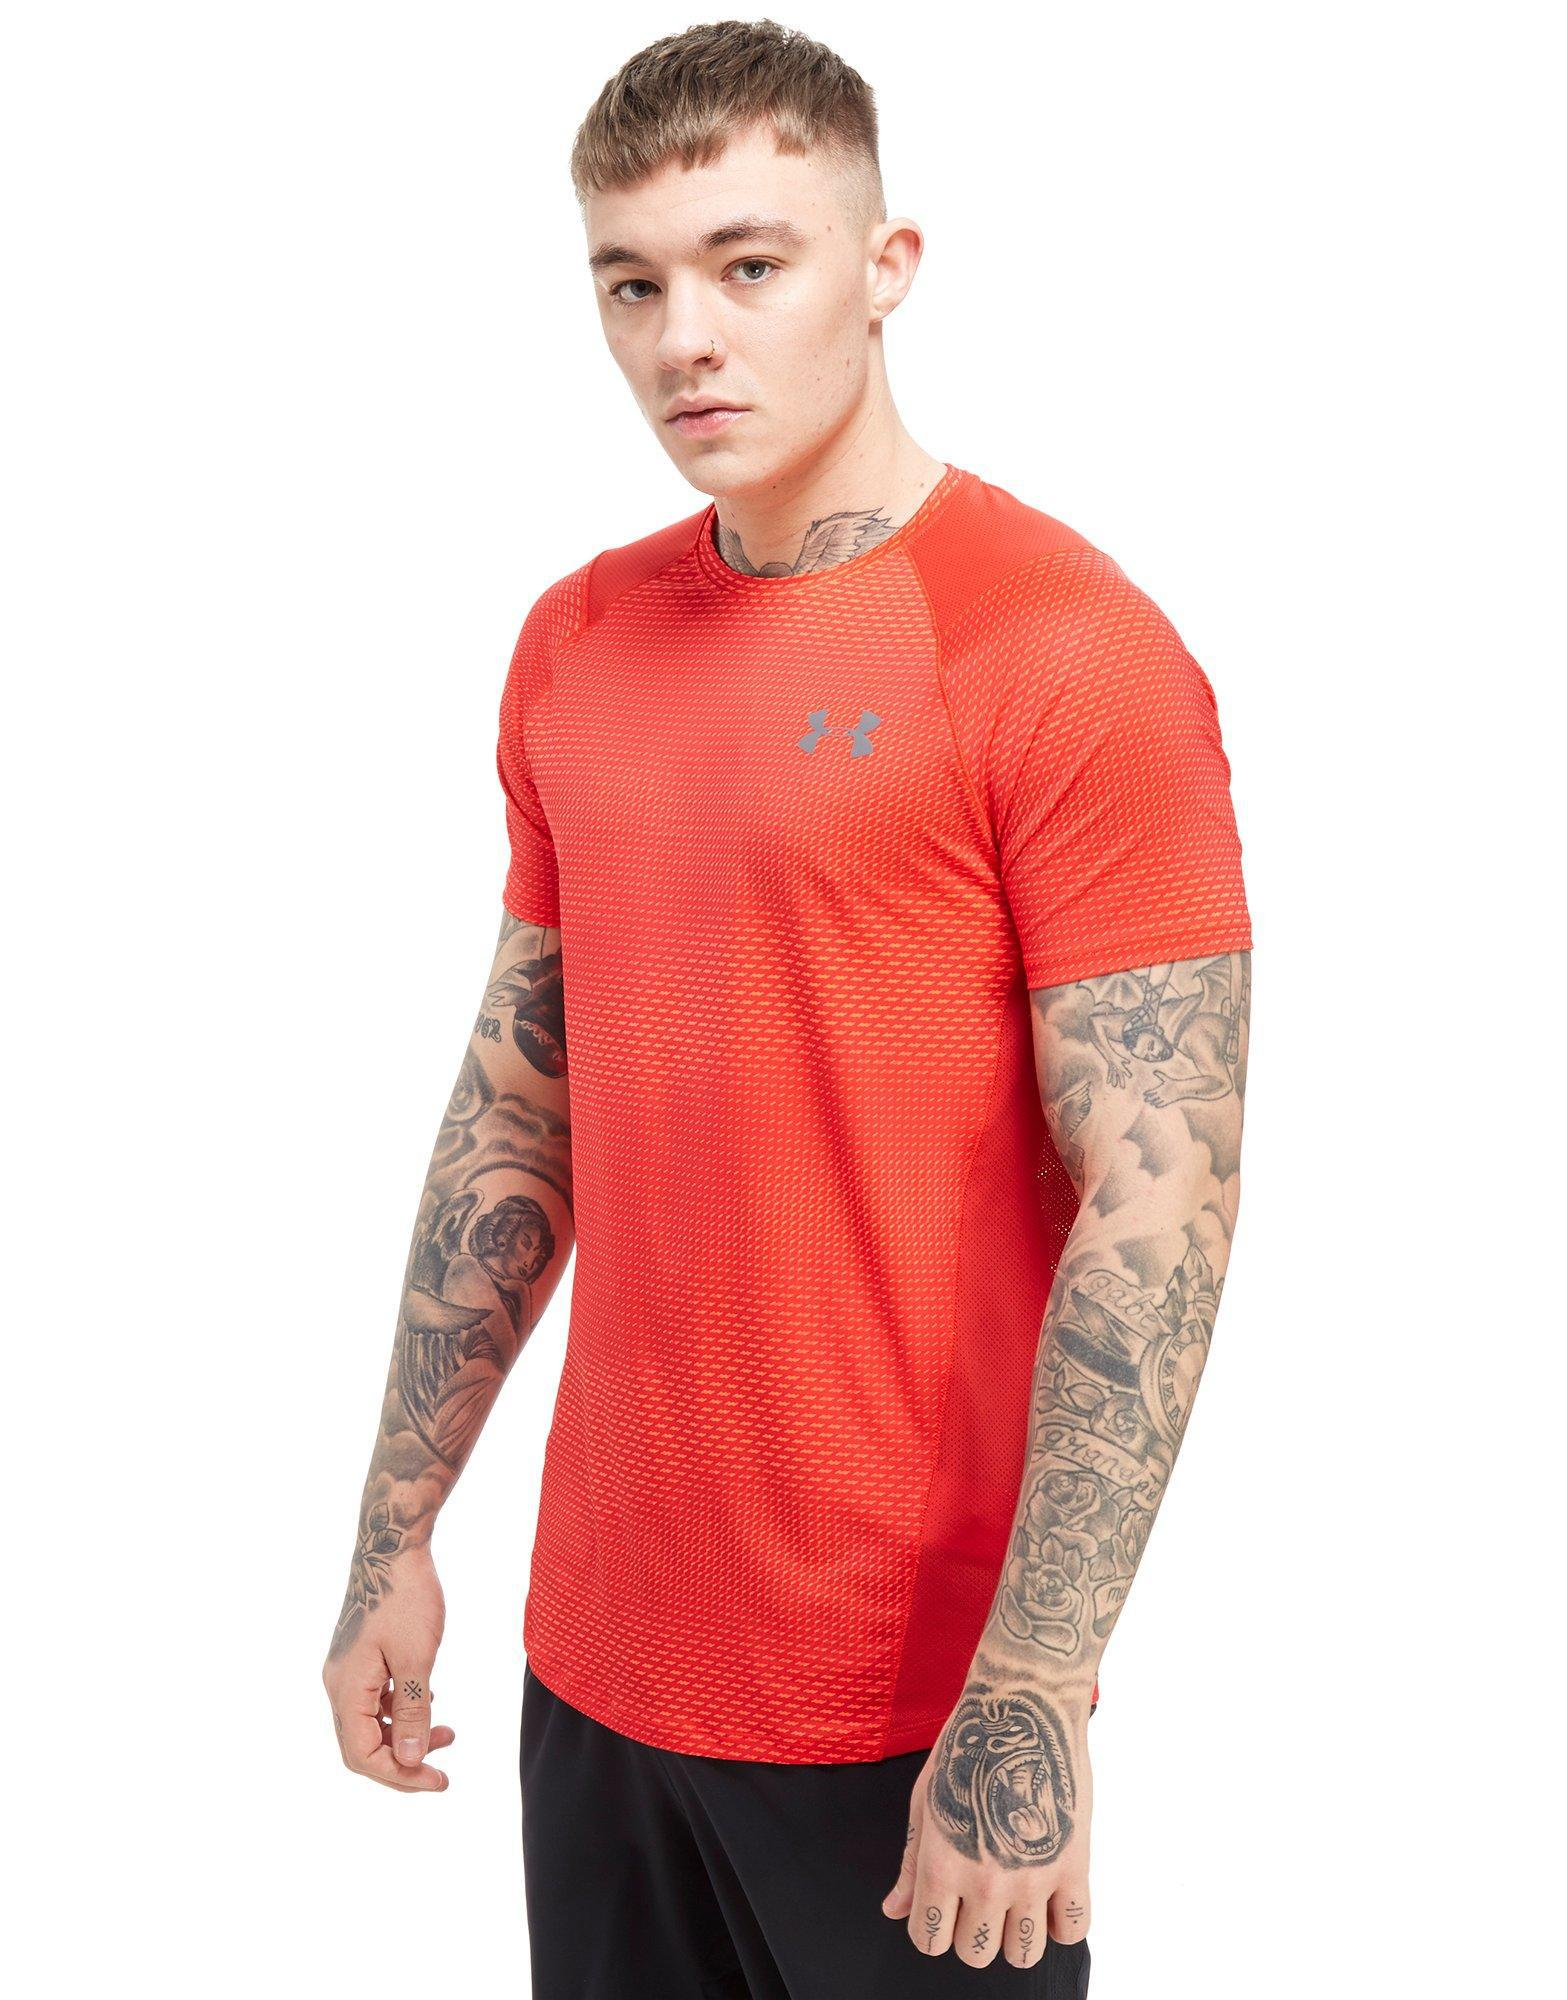 43b64225 Under Armour Raid Print T-shirt in Red for Men - Lyst